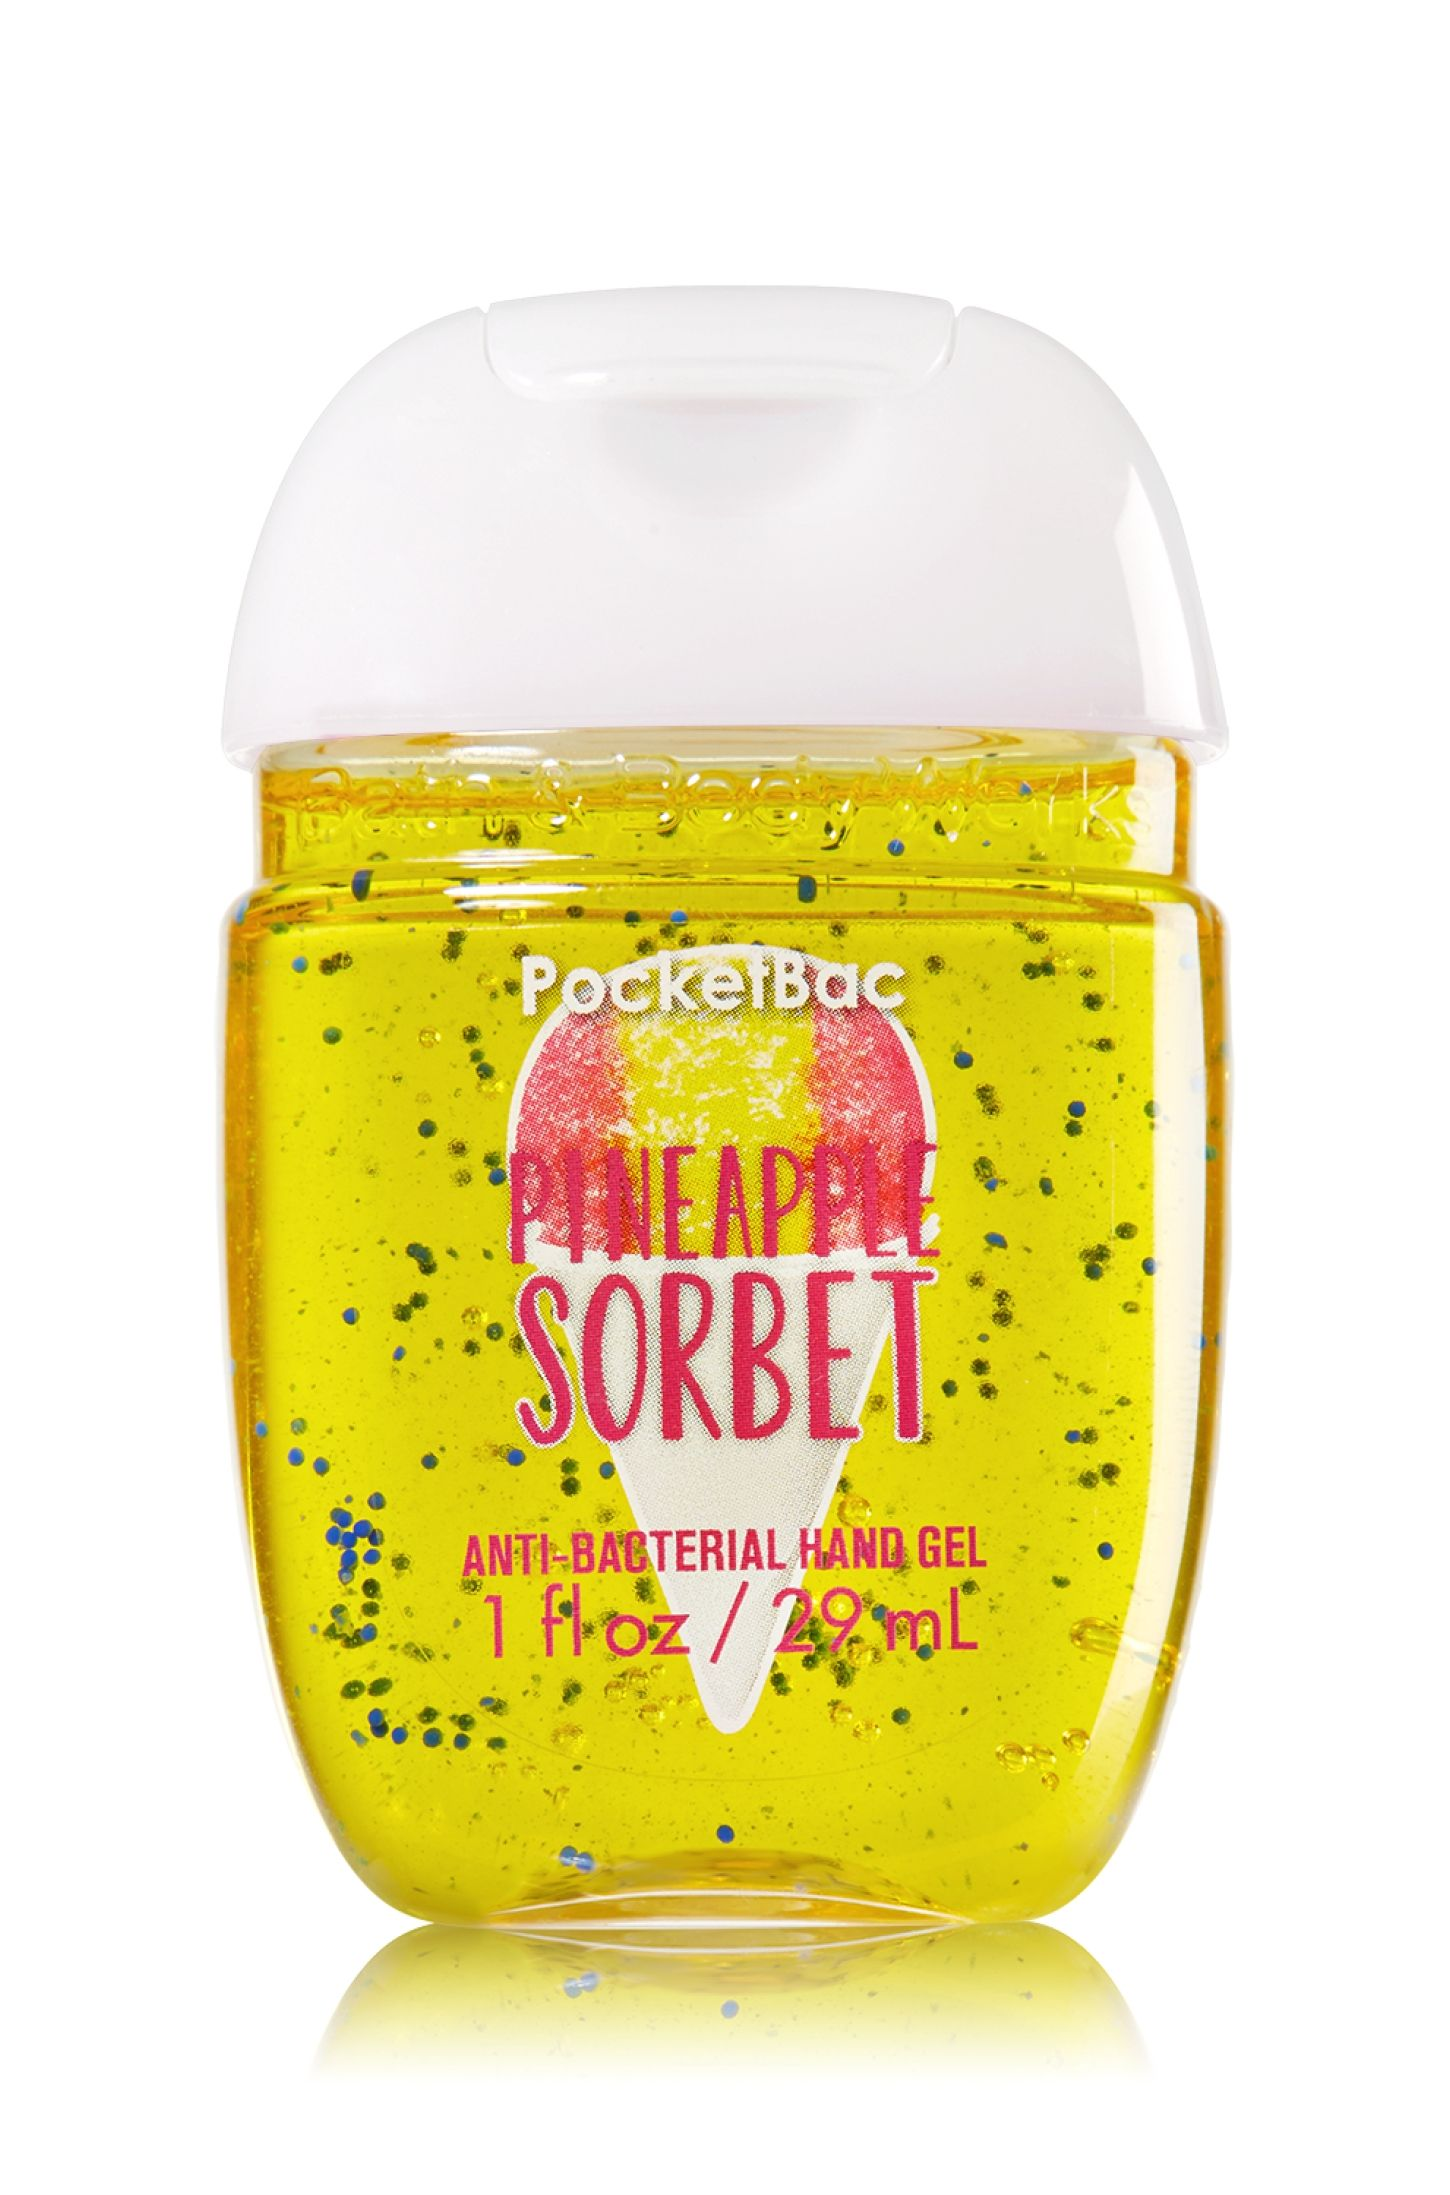 Bath Body Works Pineapple Sorbet Pocketbac Sanitizing Hand Gel